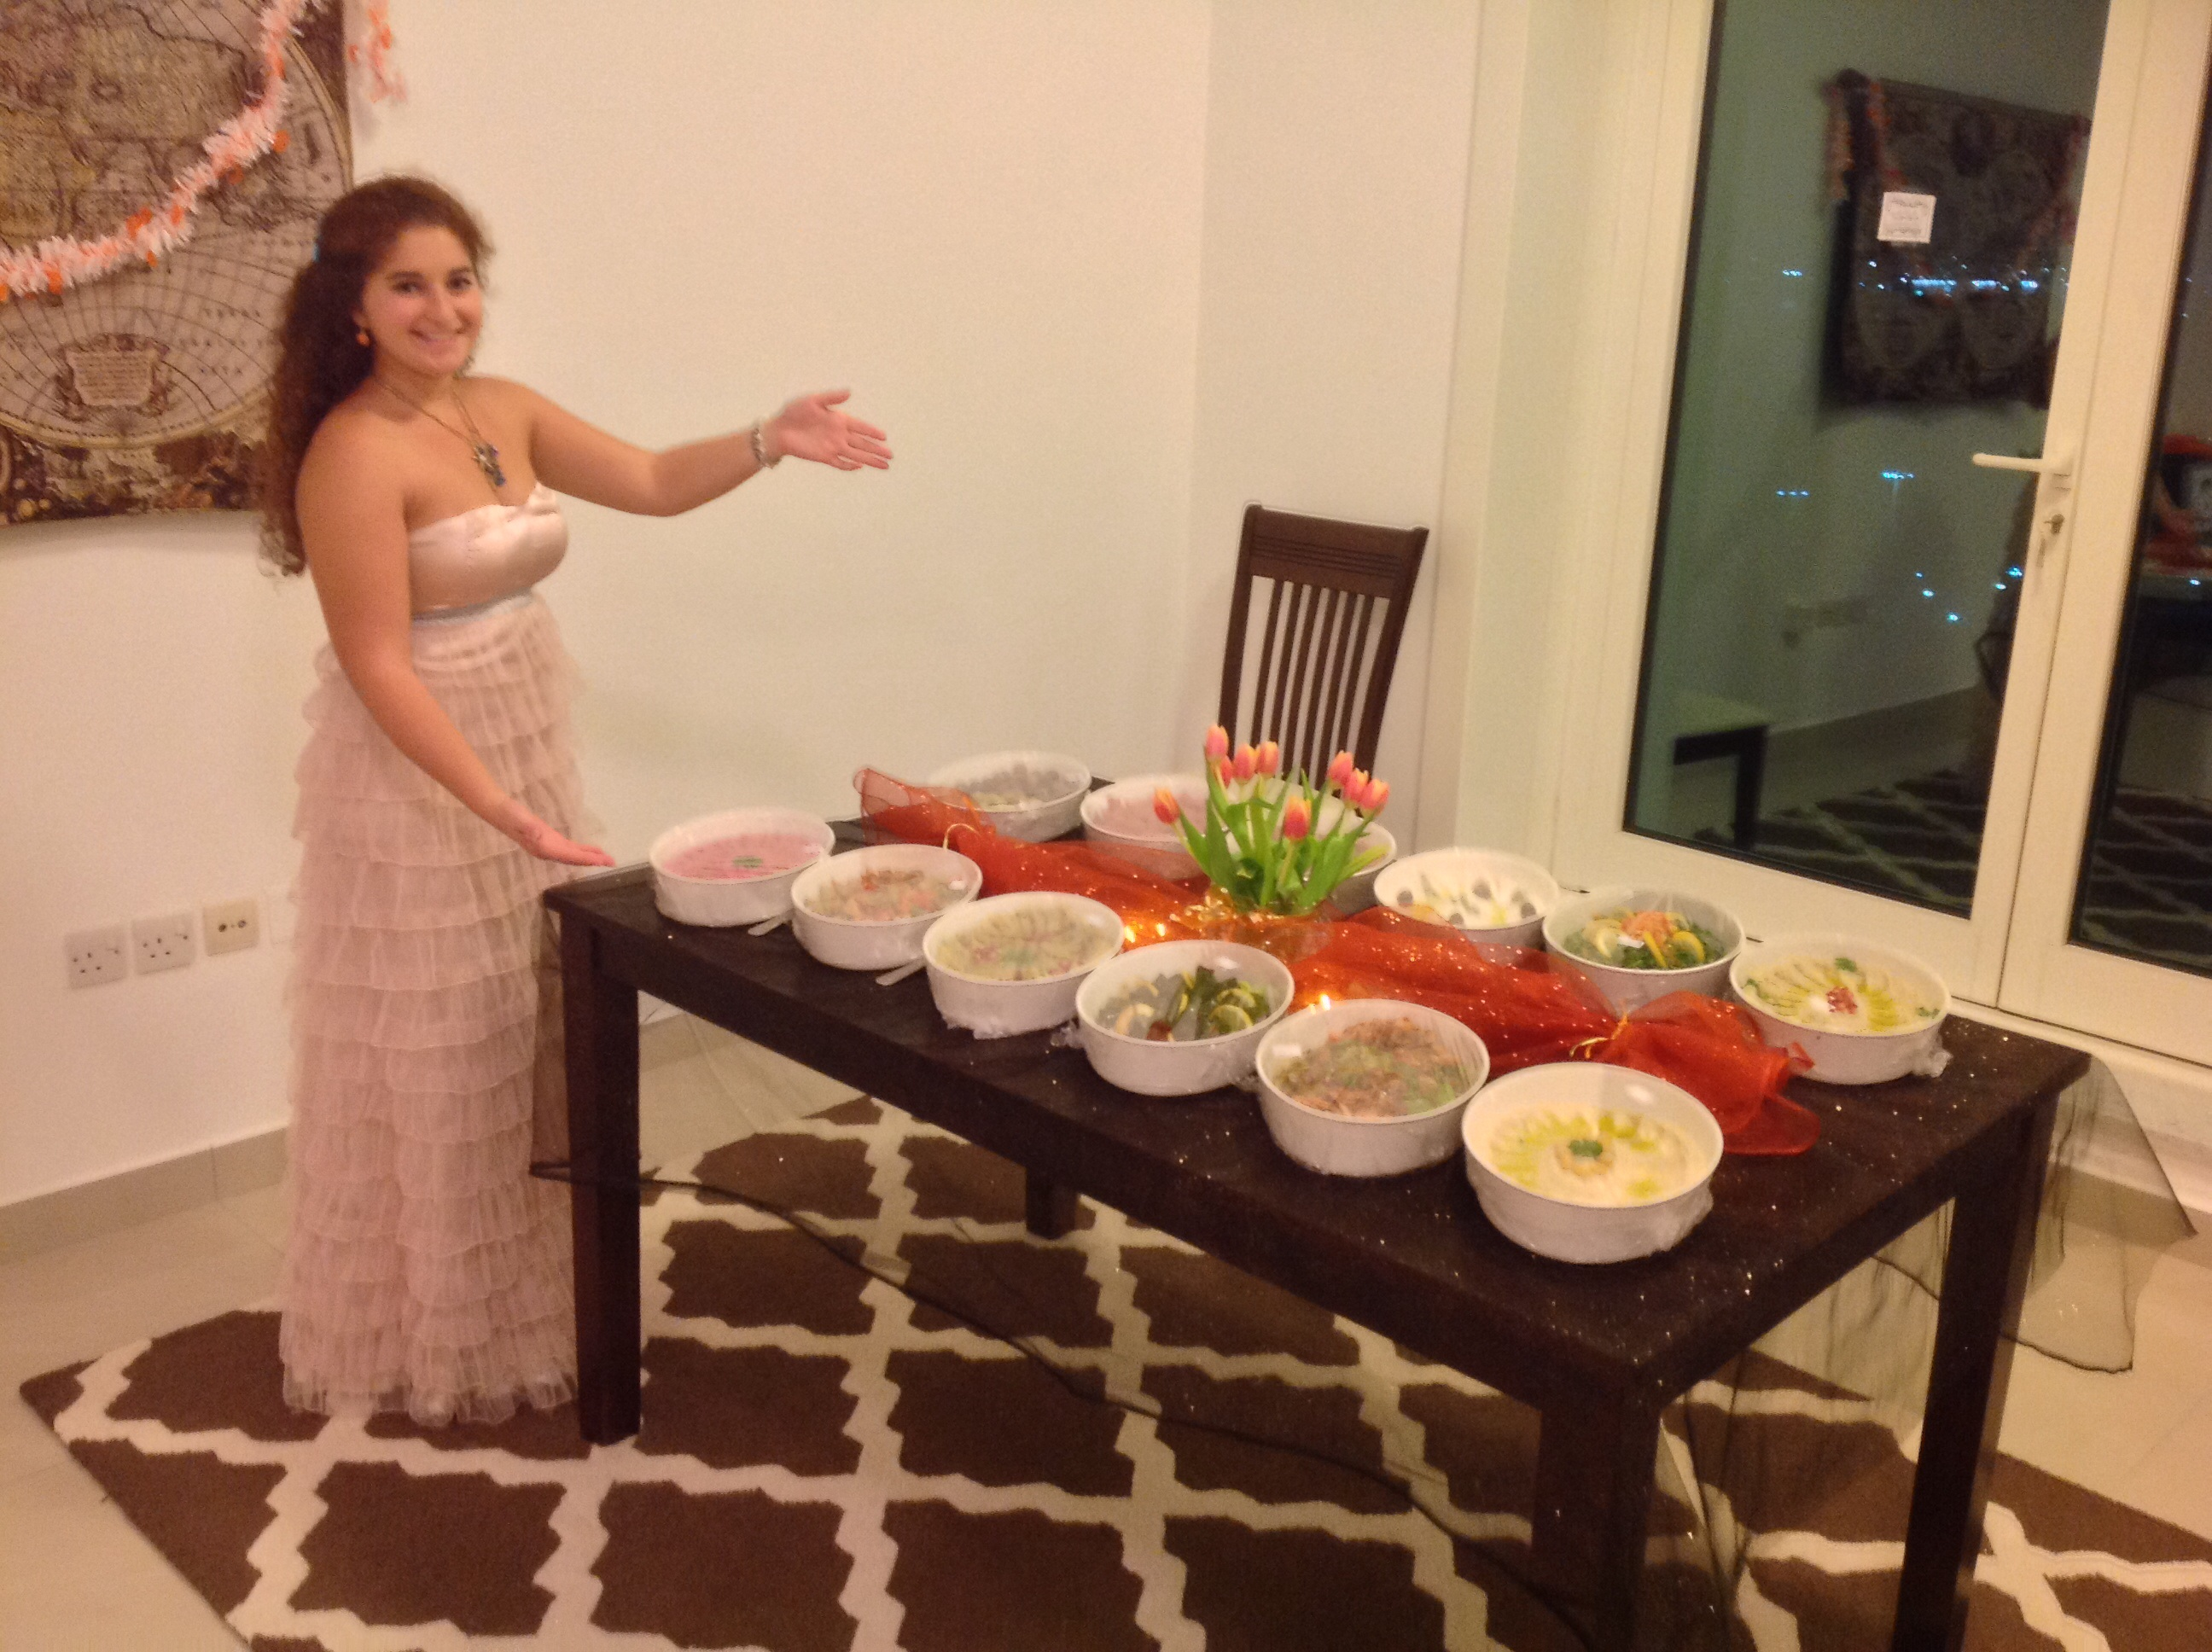 the food table!